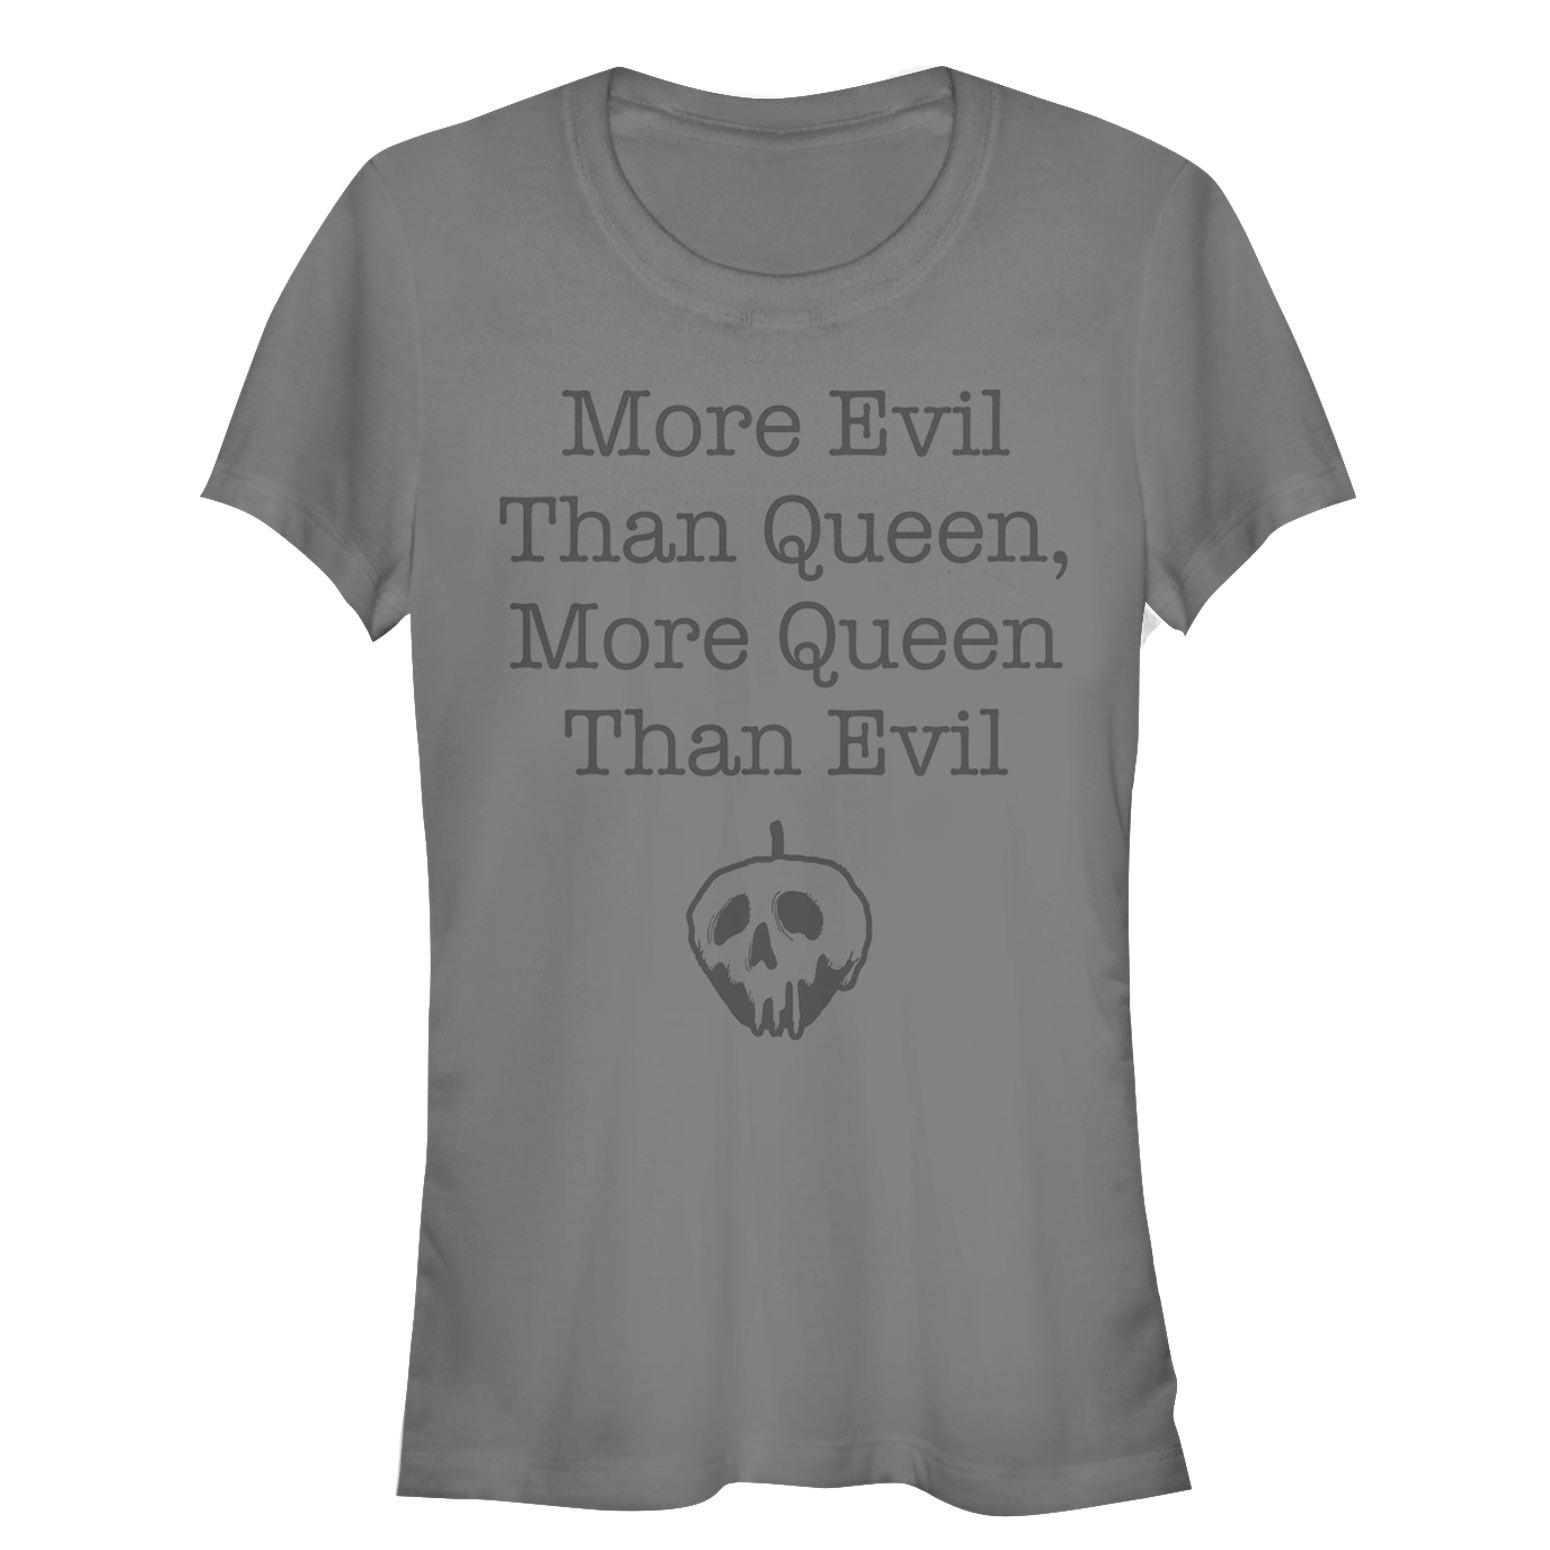 Snow White and the Seven Dwarves Juniors' More Queen T-Shirt